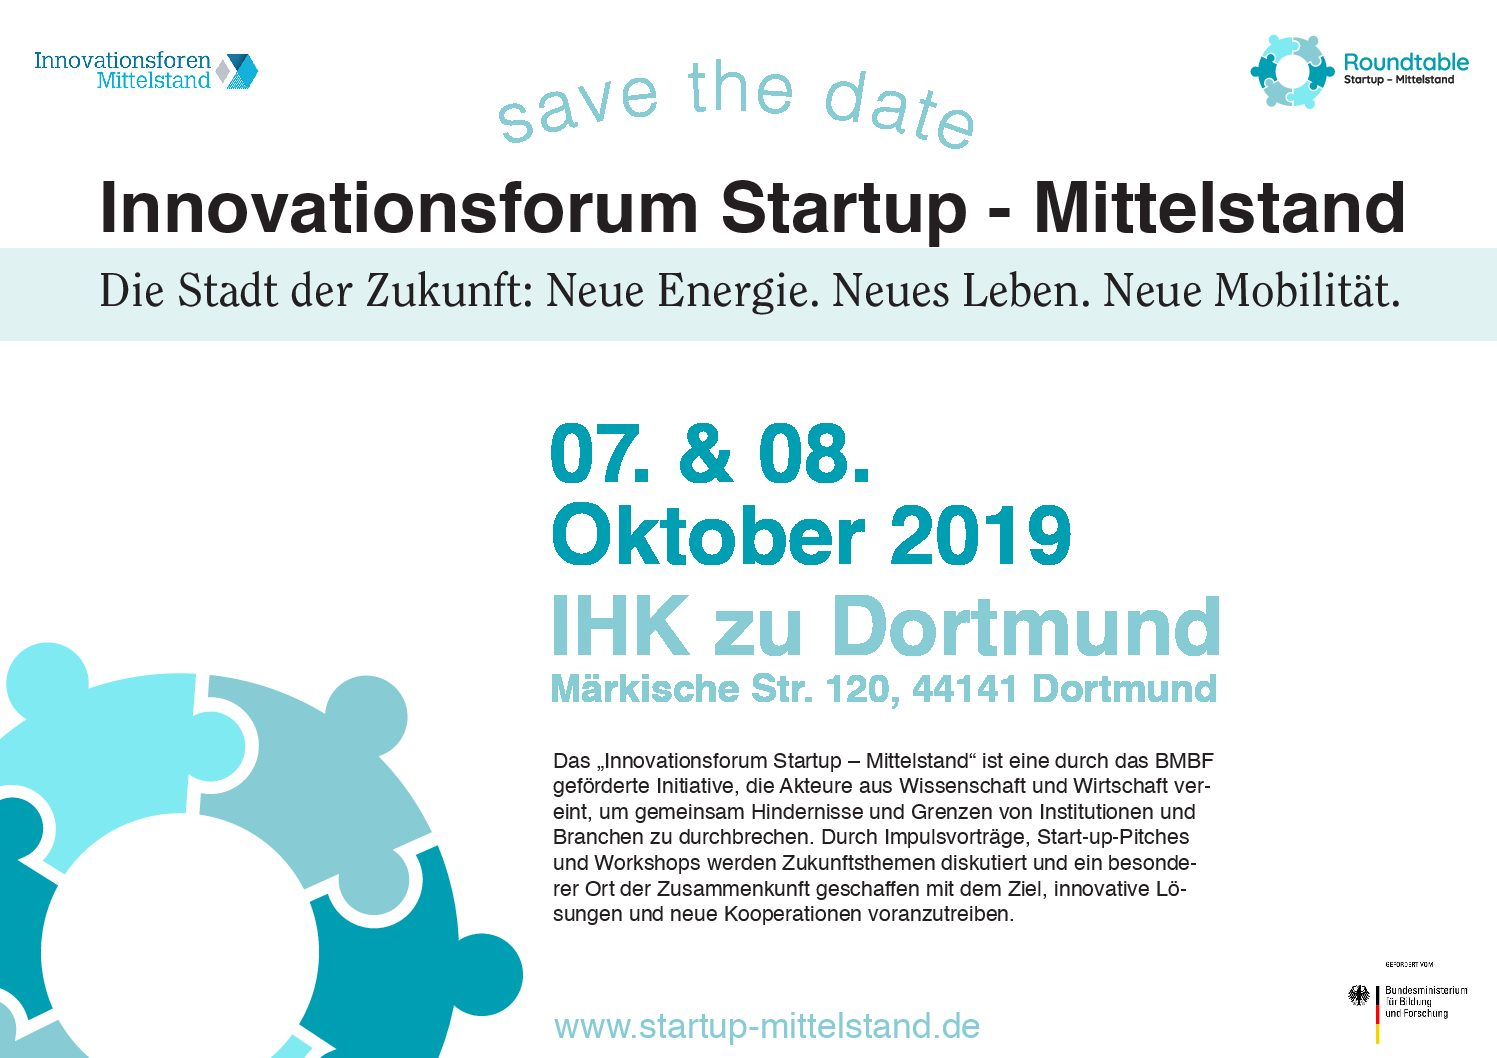 Innovationsforum Startup-Mittelstand